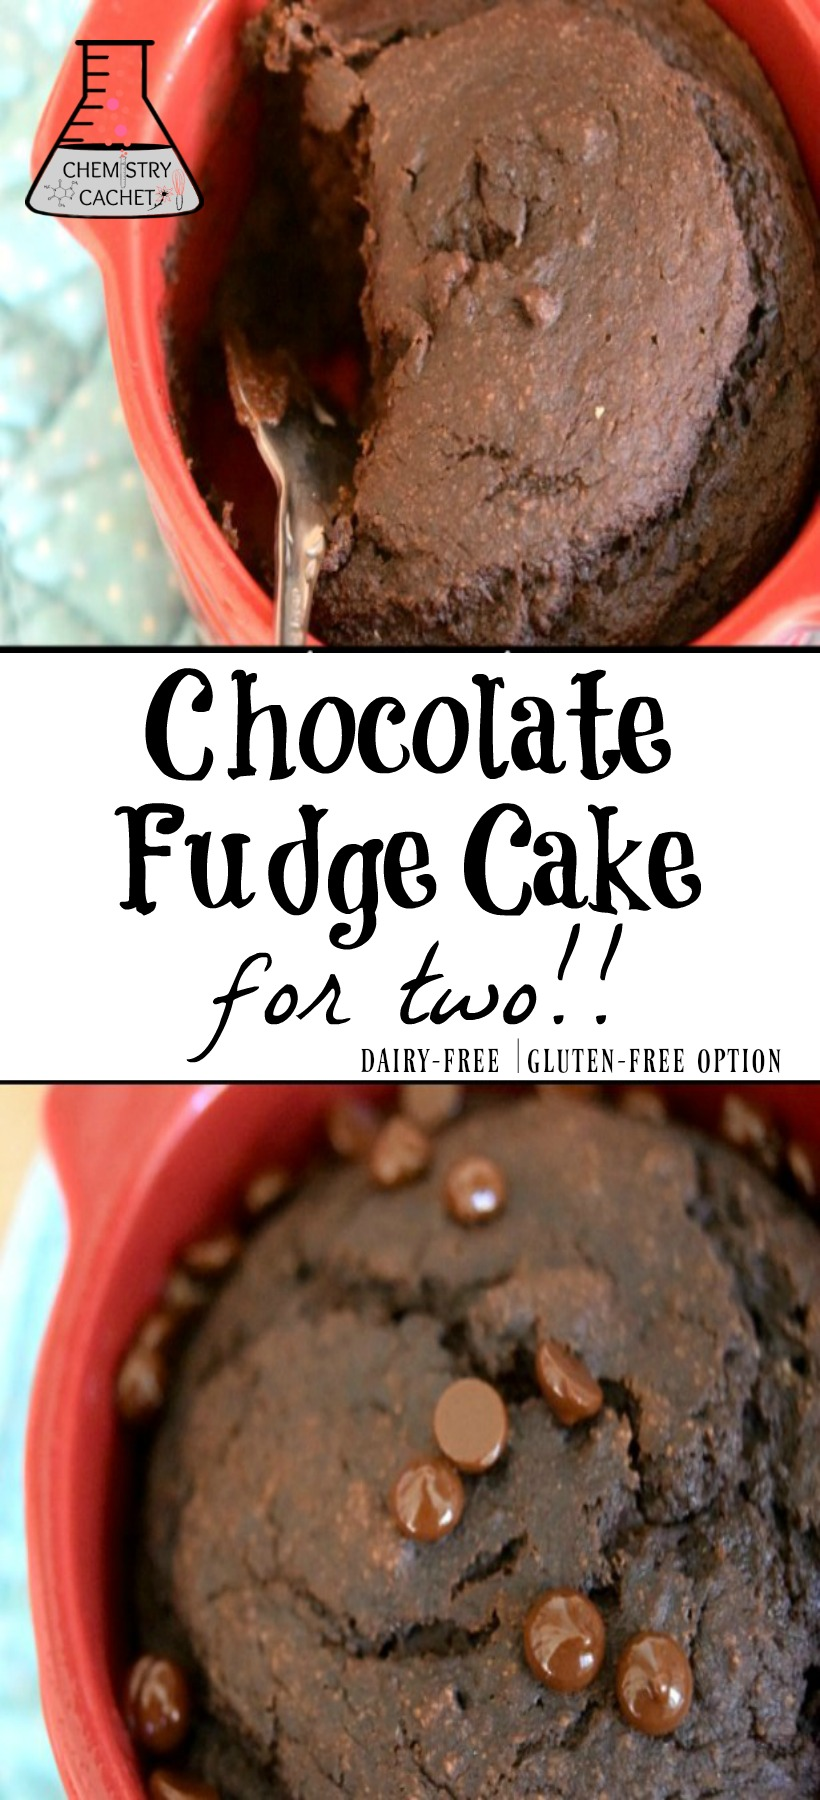 Delicious Easy Healthy Chocolate Fudge Cake for two. Dairy-free fudge cake with gluten-free option! on chemistrycachet.com